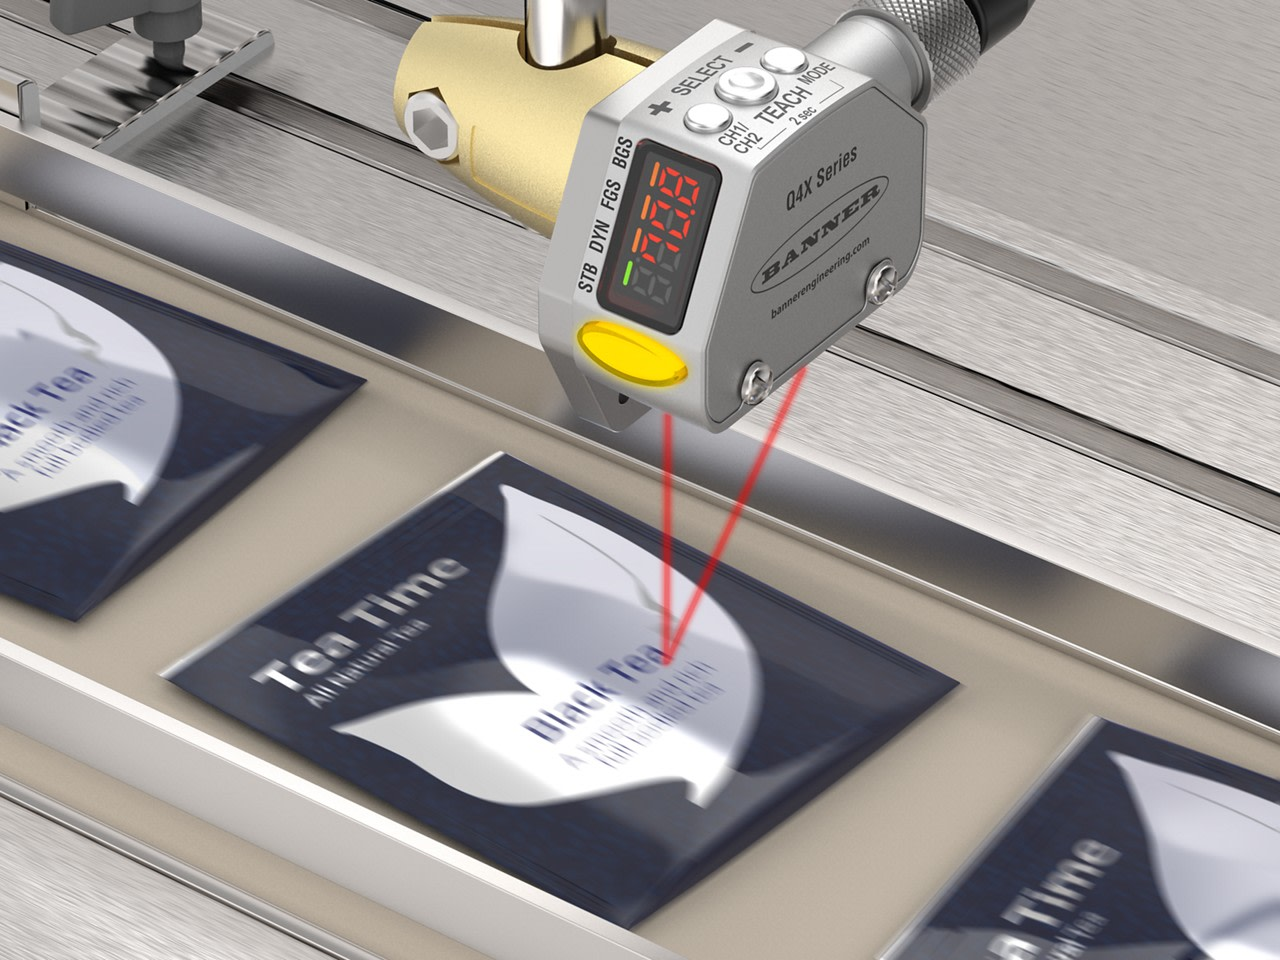 Counting Multicolored Reflective Packages on a Conveyer